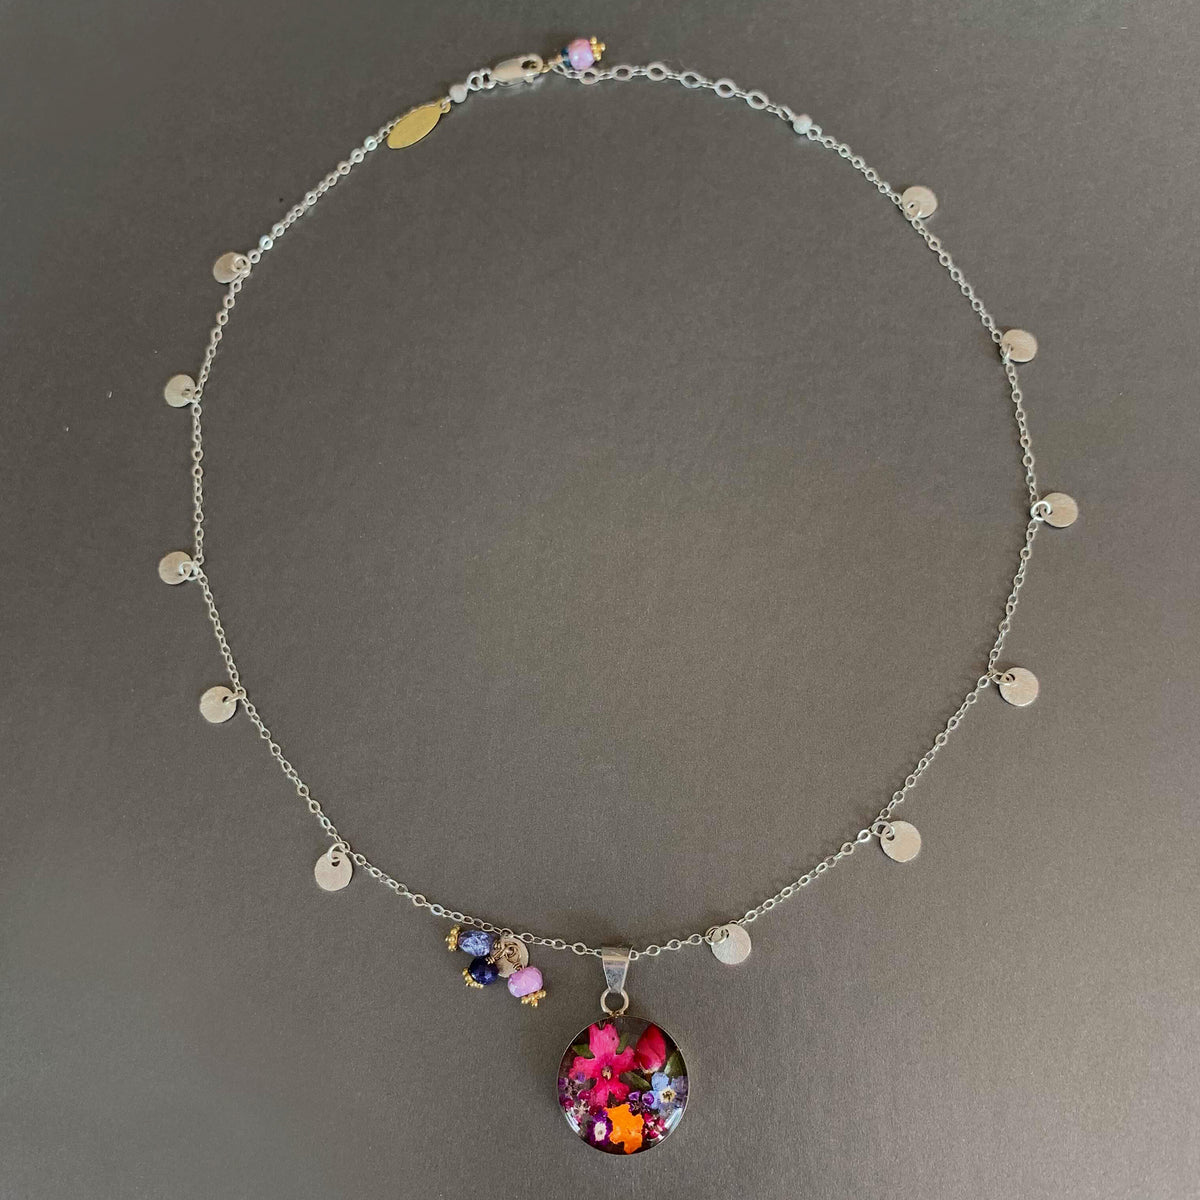 El Jardin Magnifico necklace